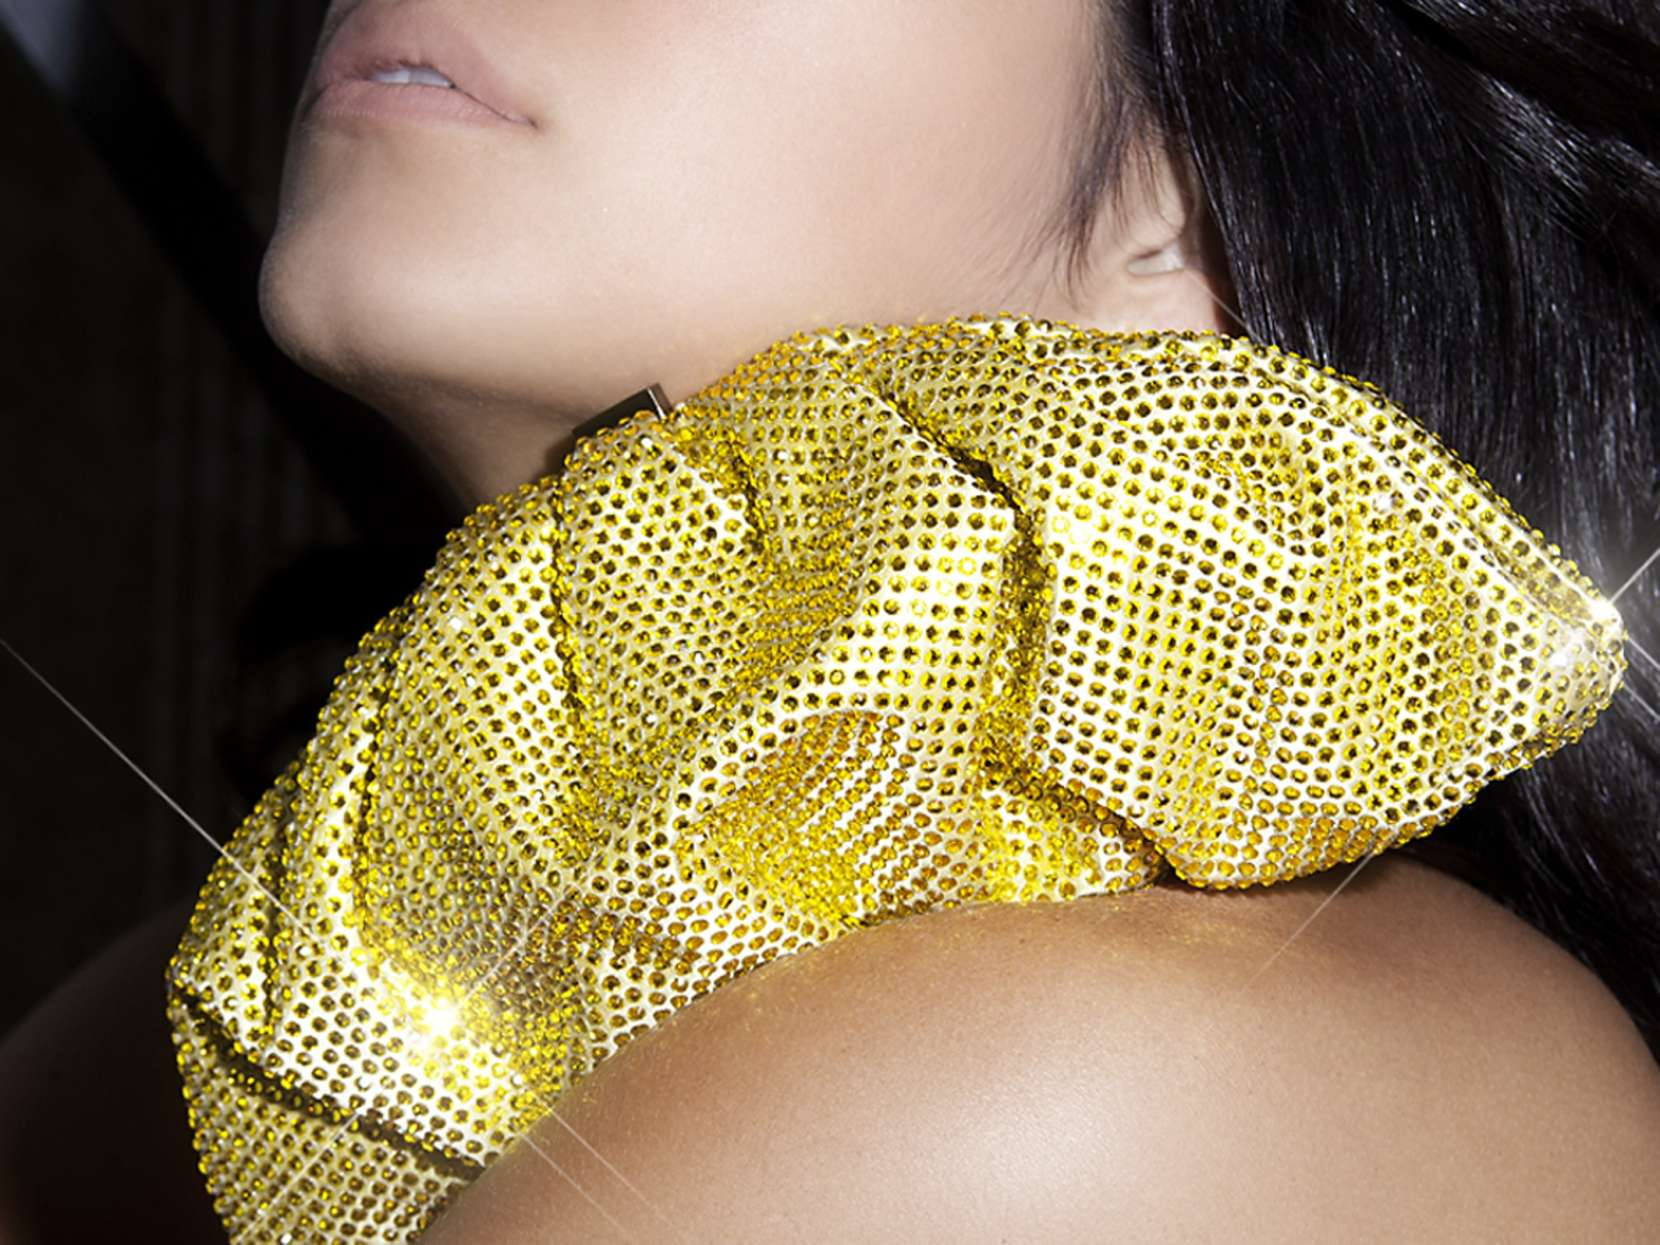 3_WTL_Designer-to-watch_SHANA_London_DIAMOND-YELLOW-1660x1245.jpg